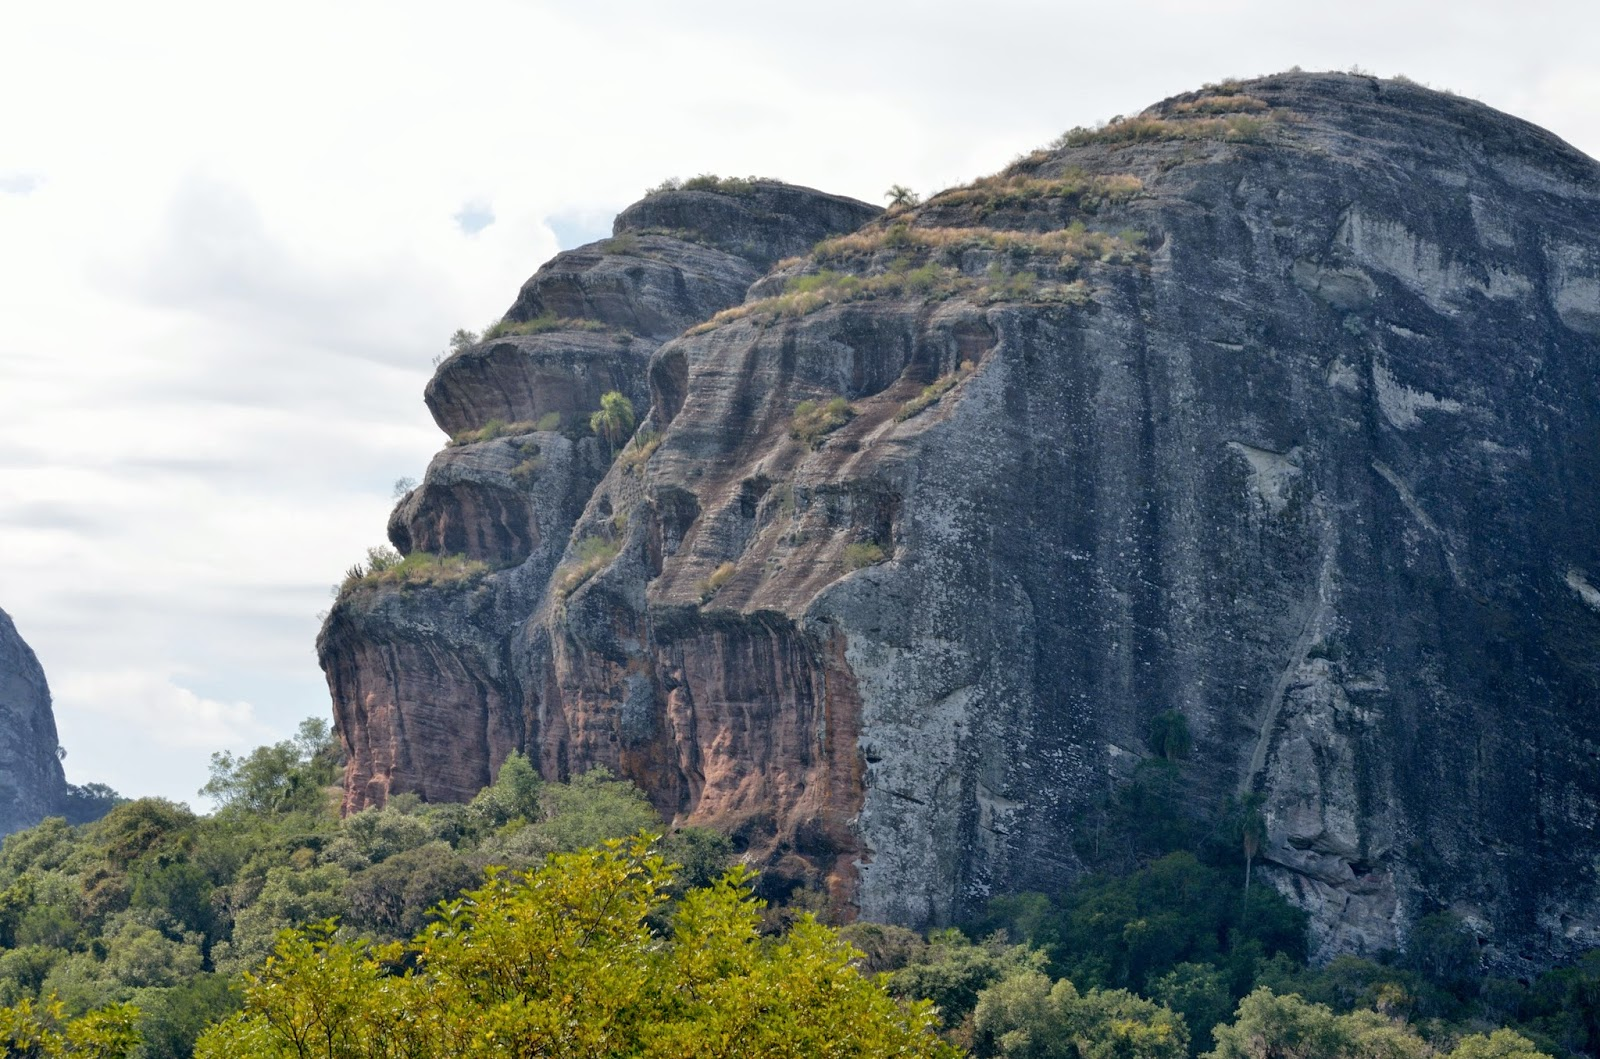 Pedra do Segredo